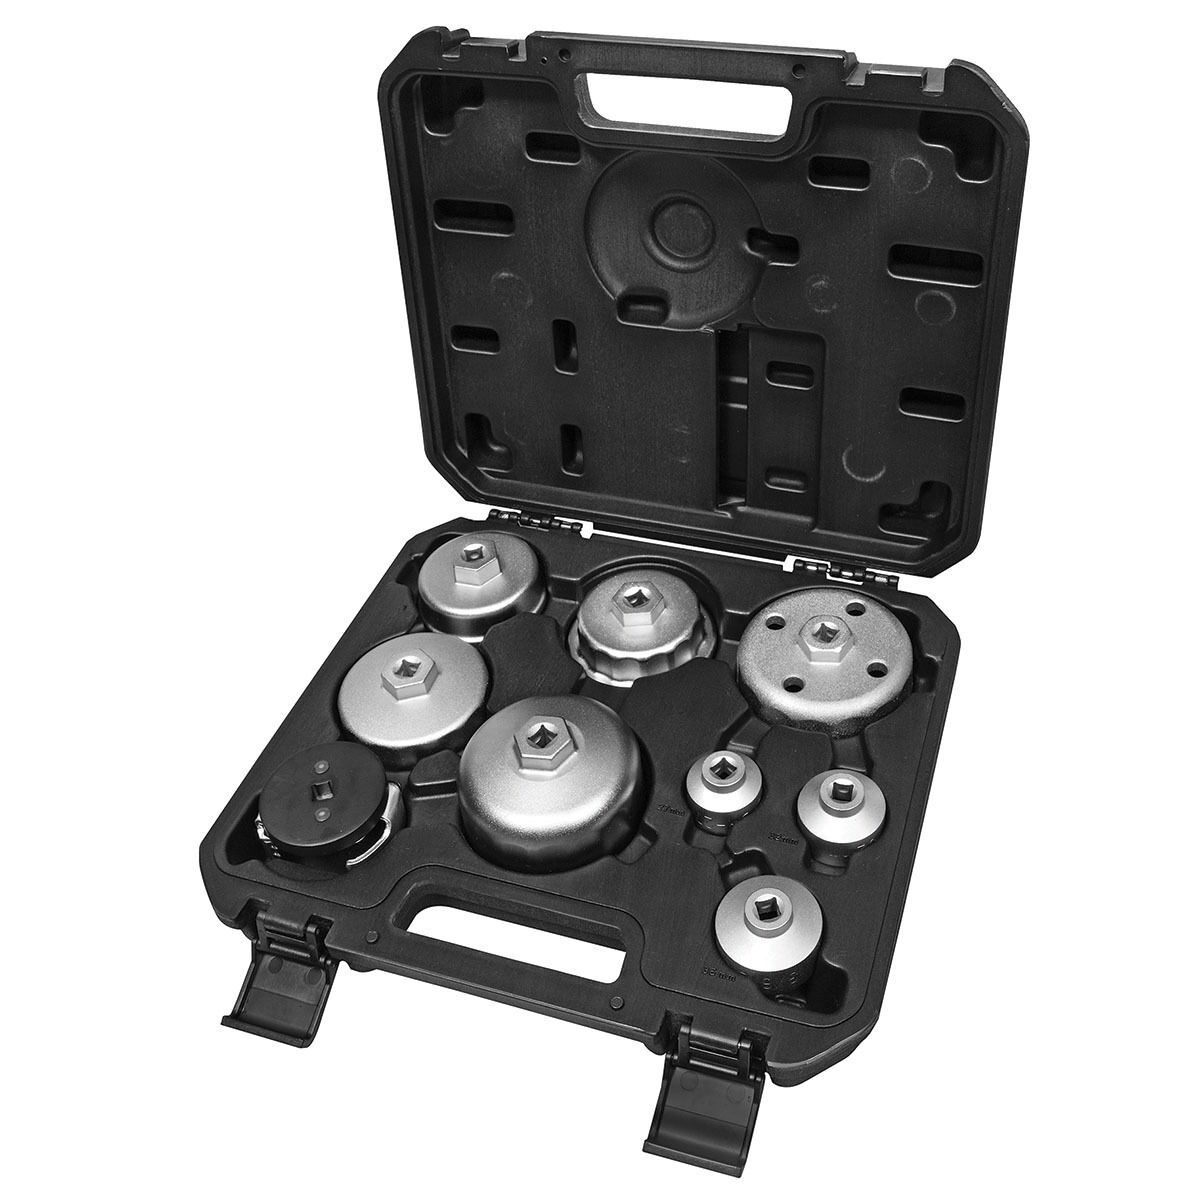 Oil Filter Removal Socket & Cup Set US PRO Tools 3030